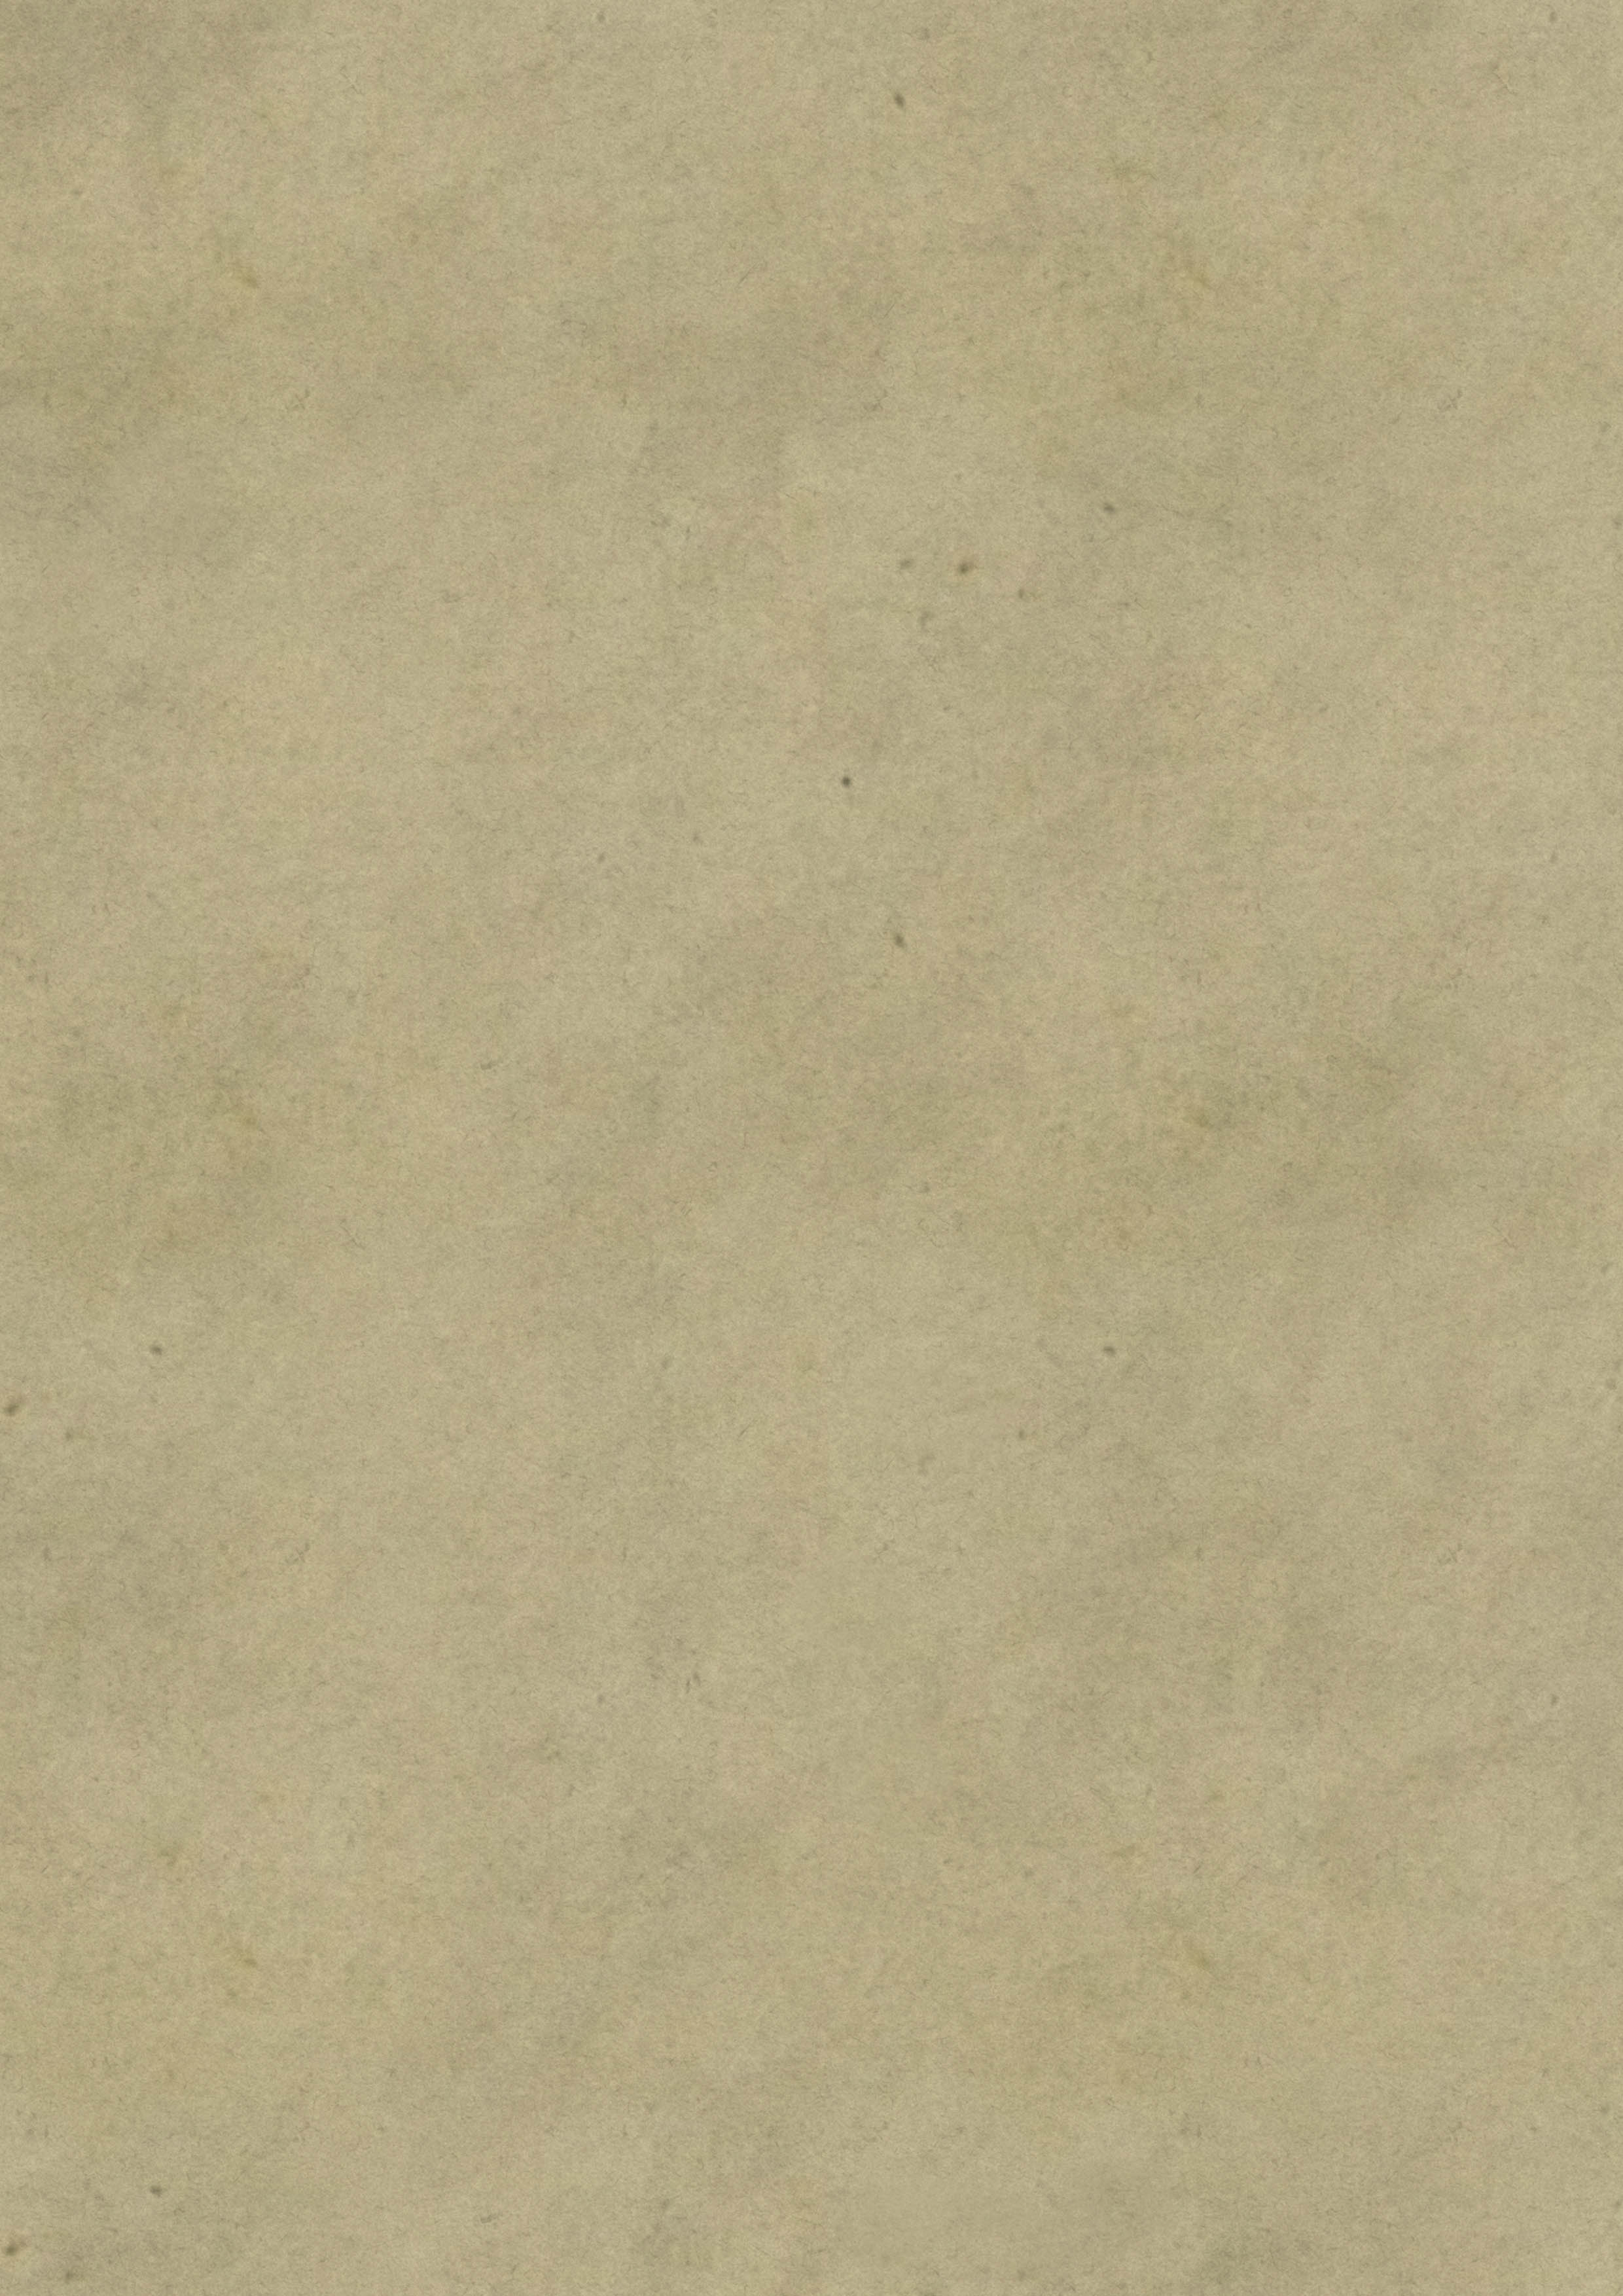 subtle stained paper texture 1b